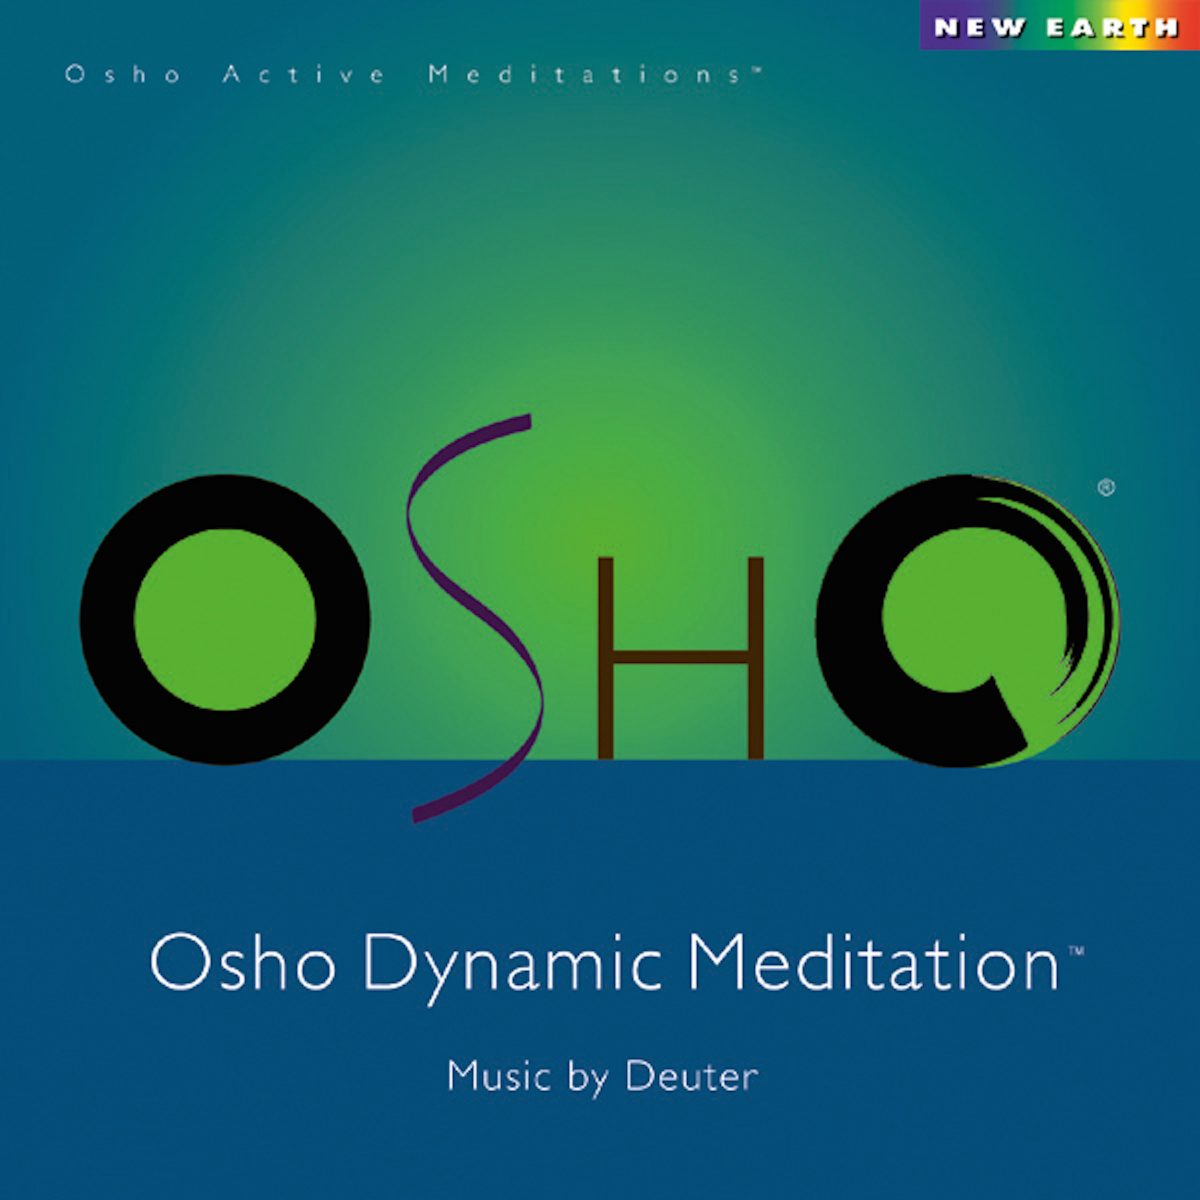 Osho Dynamic Meditation - New Earth Records